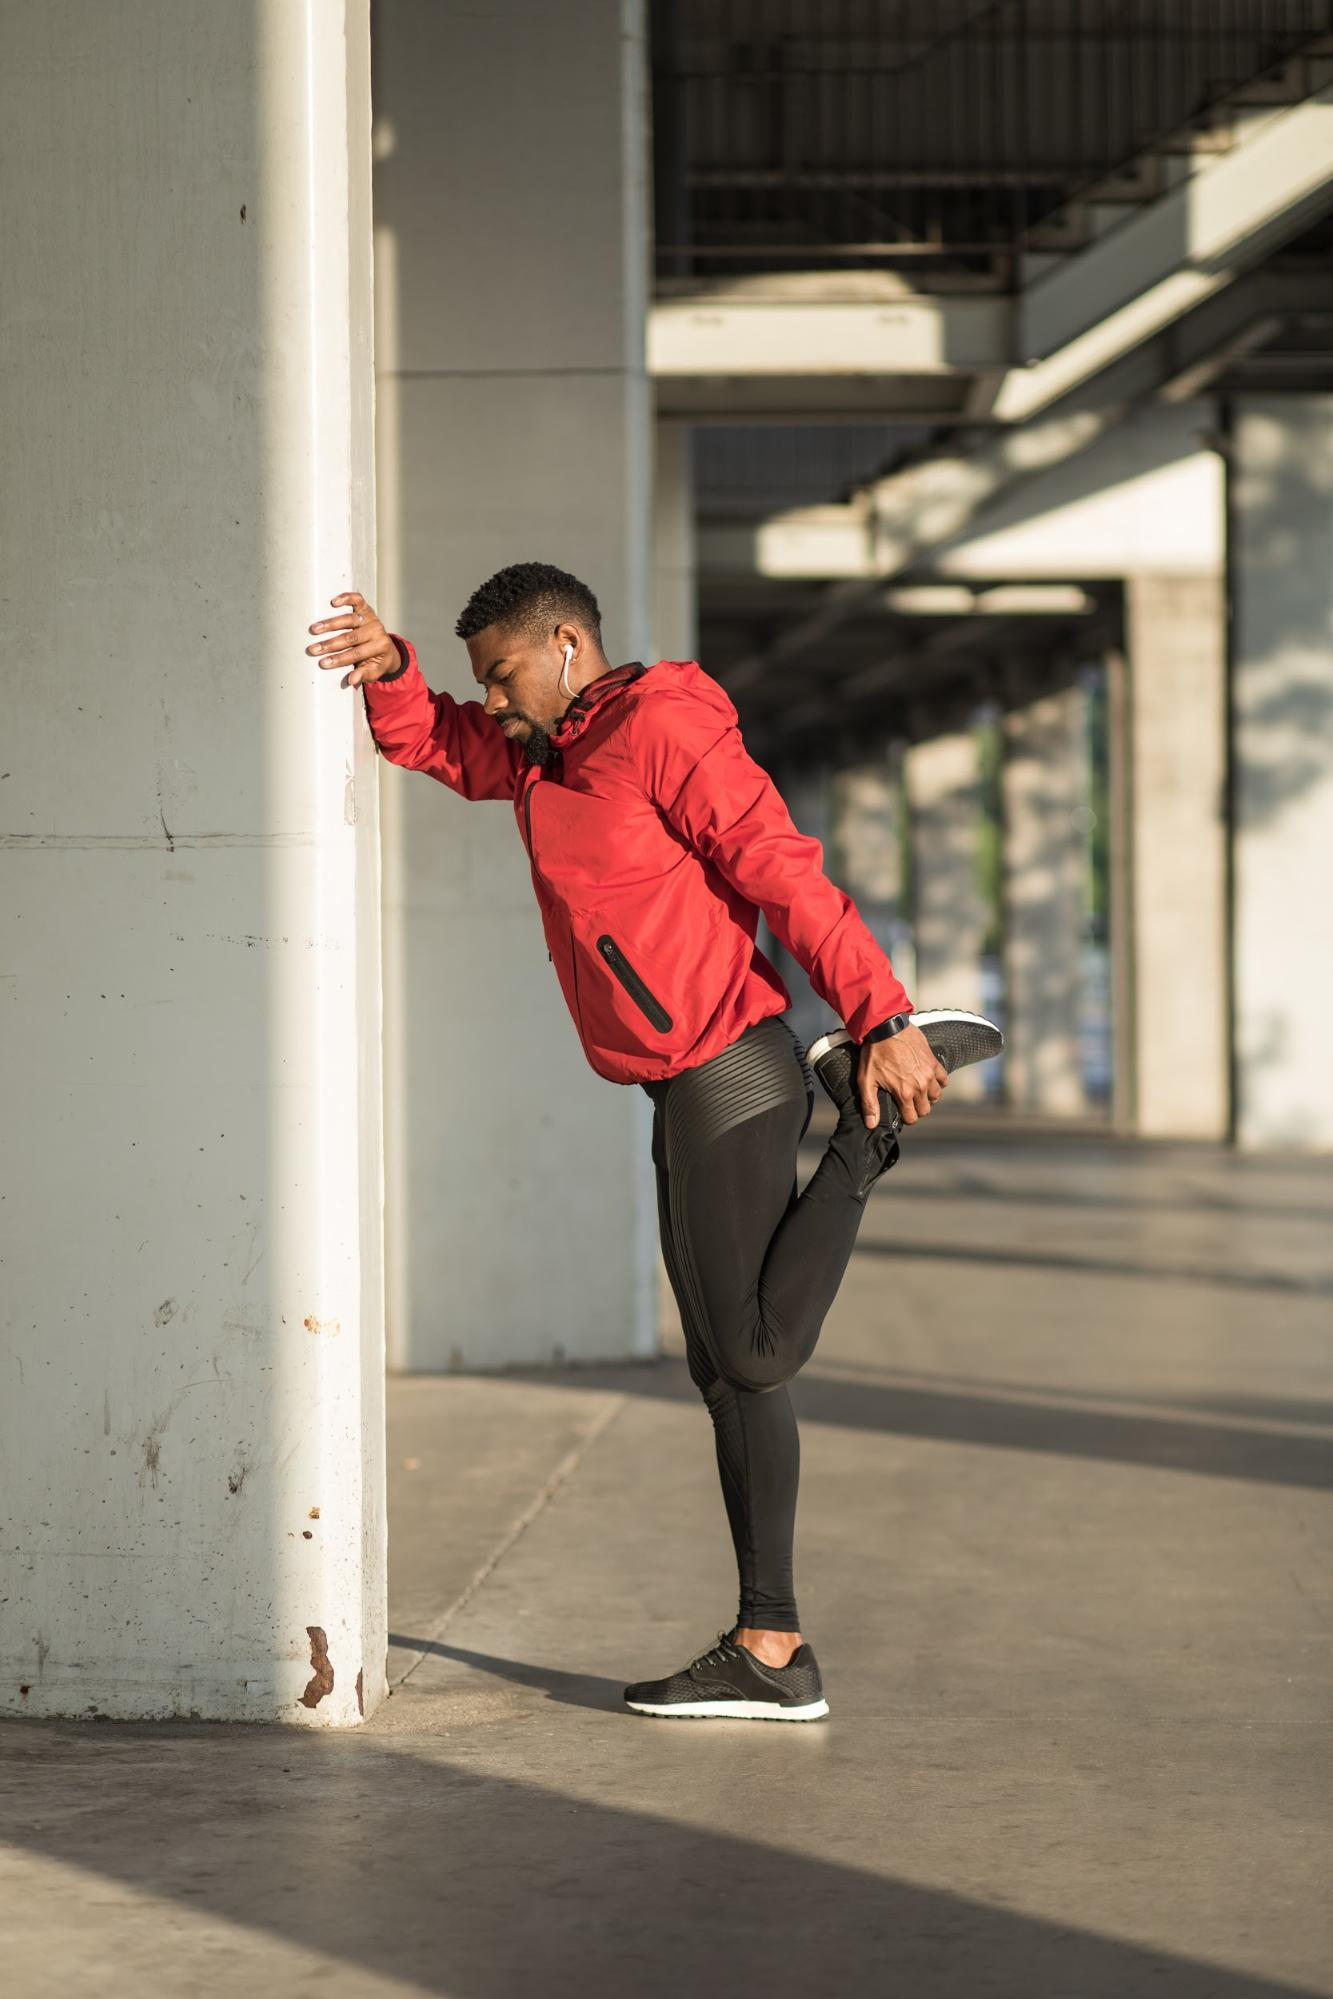 male in red jacket stretching leg against wall